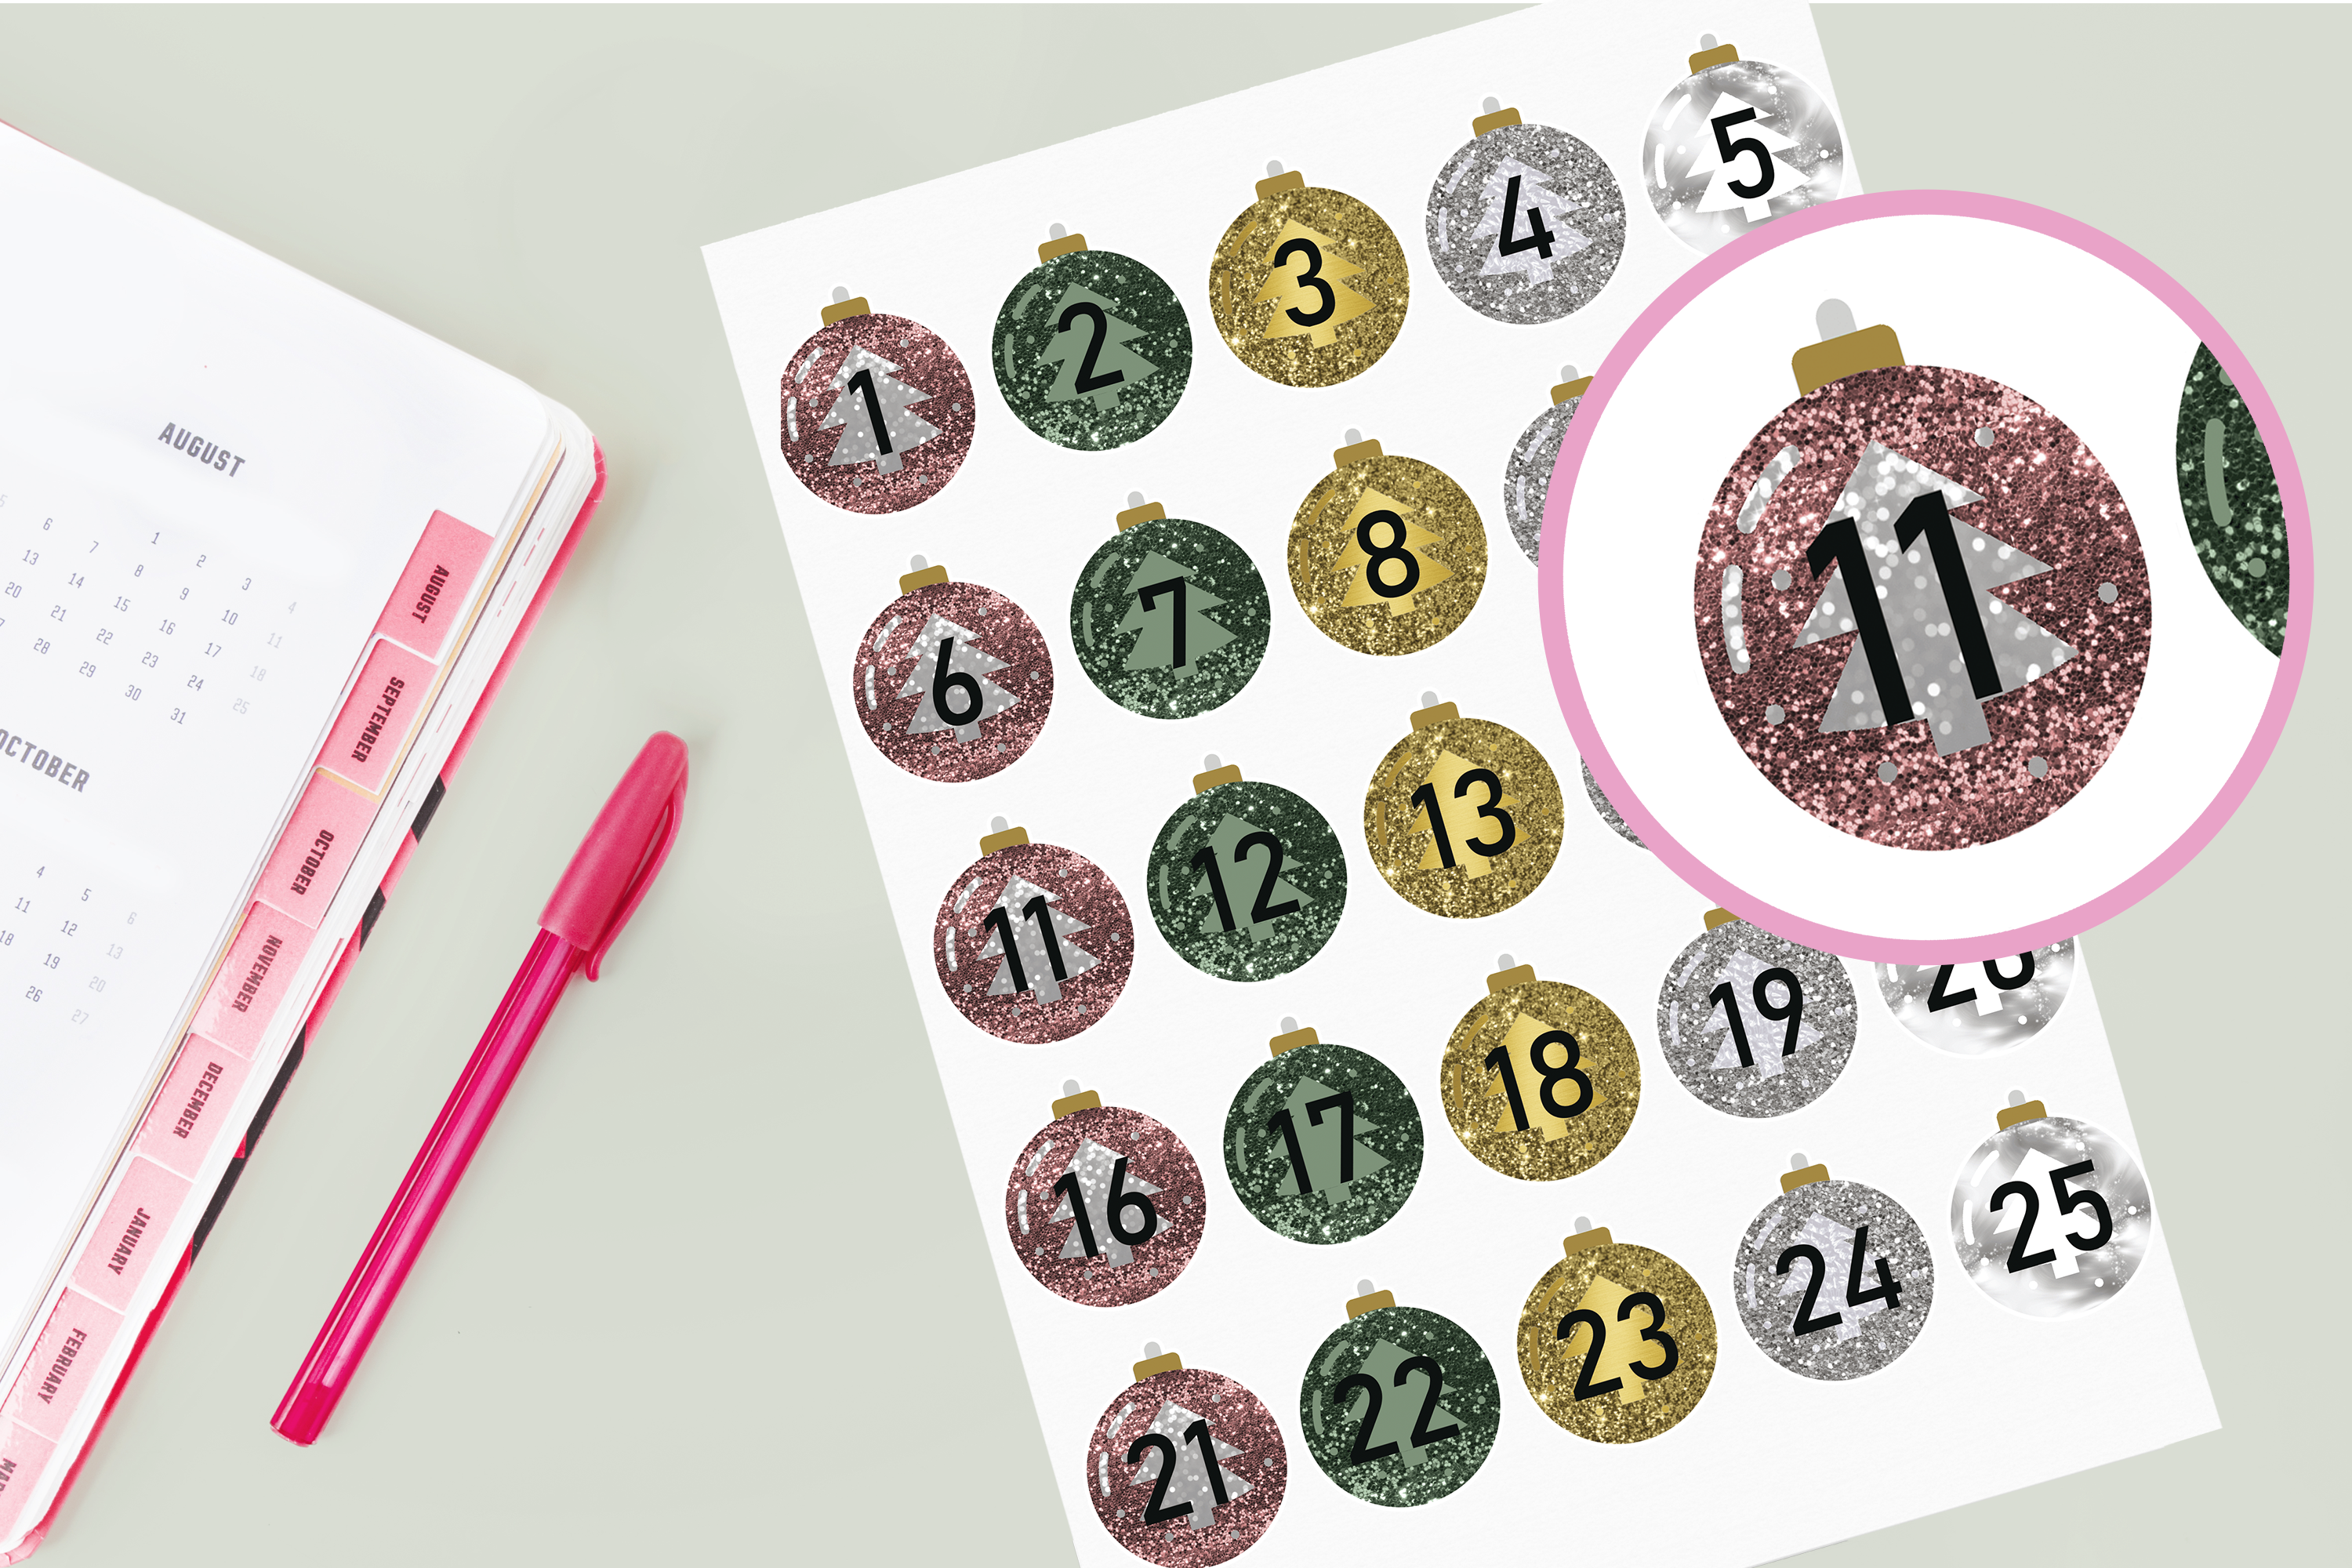 Download Free Christmas Countdown Bauble Stickers Graphic By Angela Wheeland for Cricut Explore, Silhouette and other cutting machines.